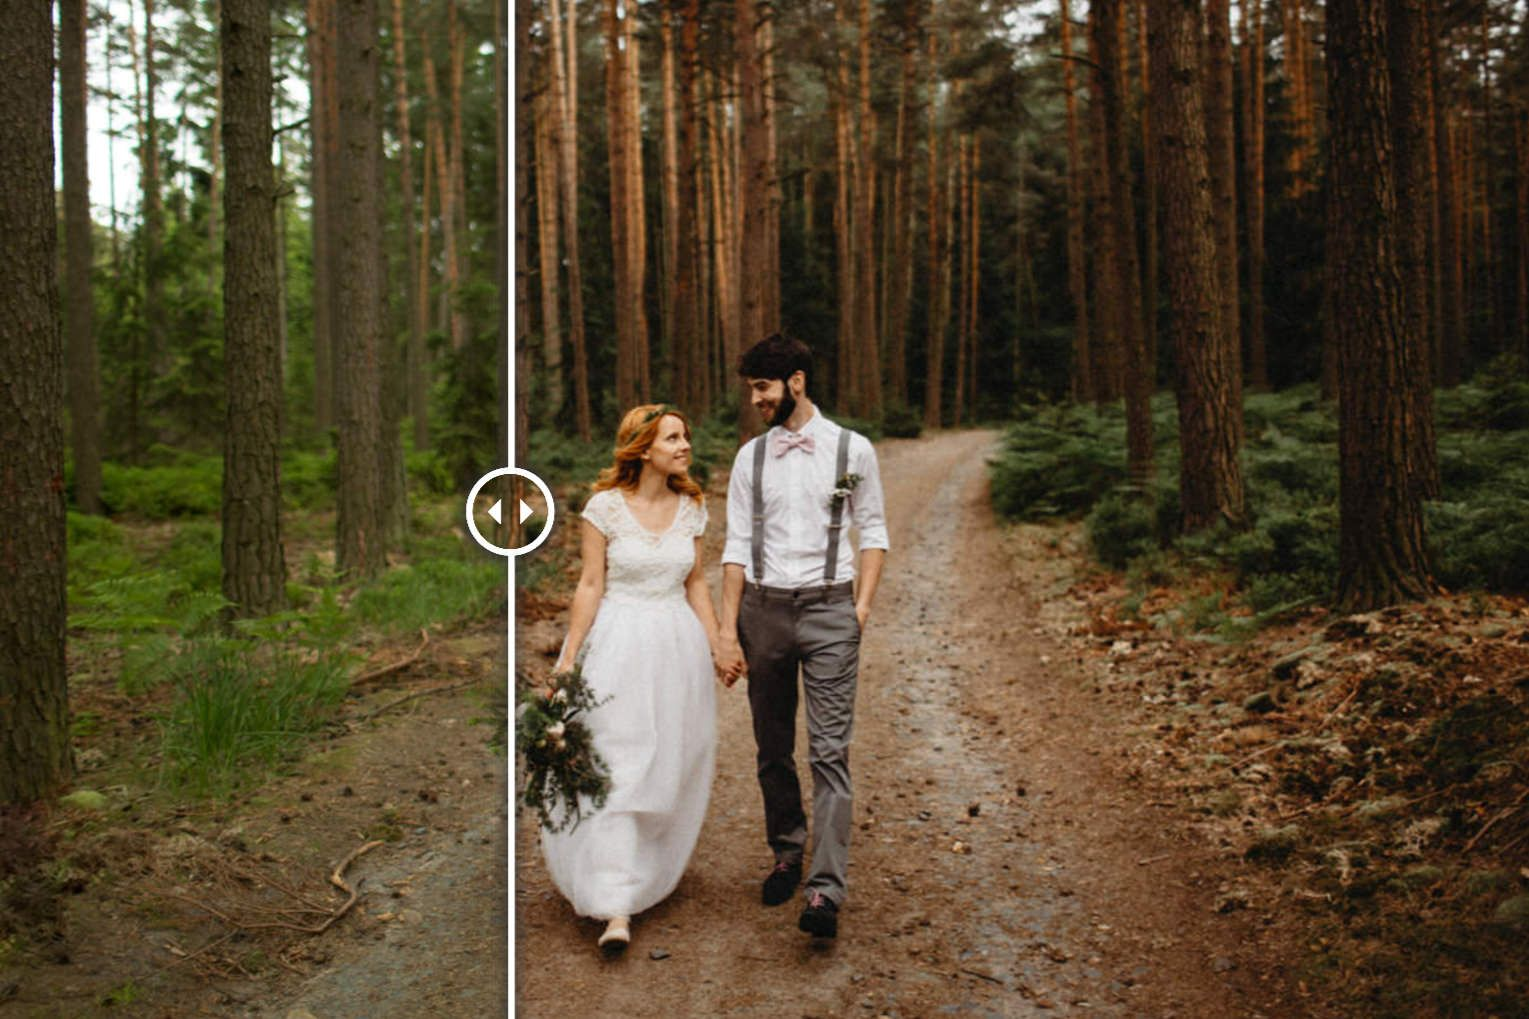 How to edit wedding photos like a pro